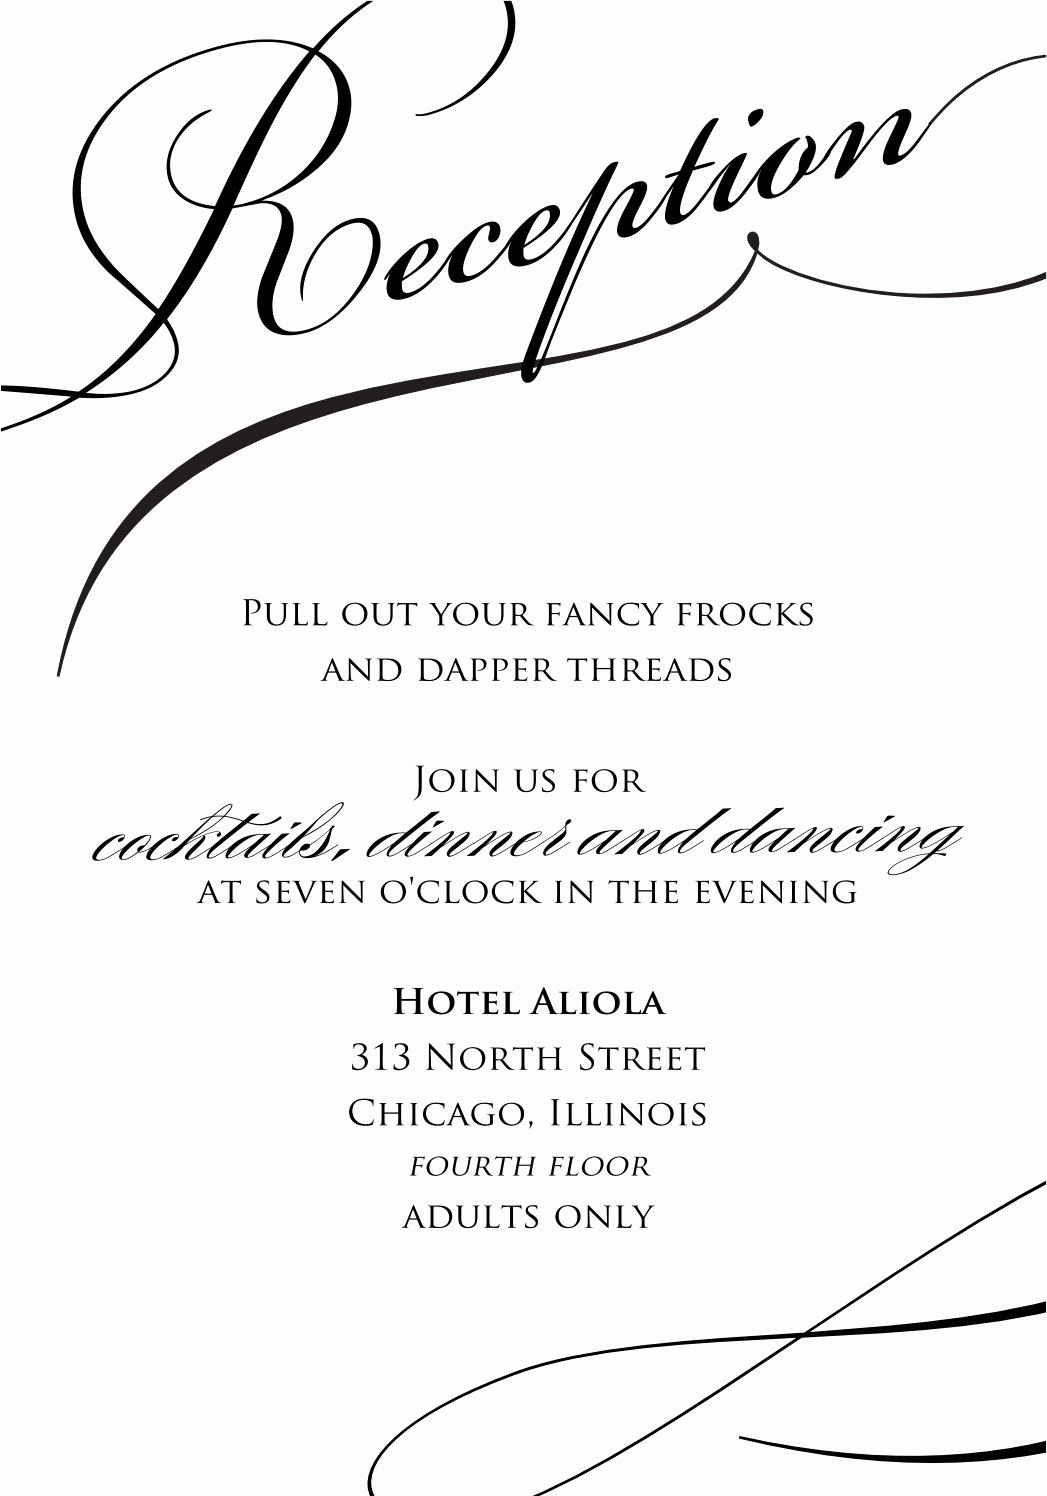 Wedding Reception Invitations Template Awesome Reception Amazing Styli Wedding Reception Invitations Reception Invitations Wedding Reception Invitation Wording